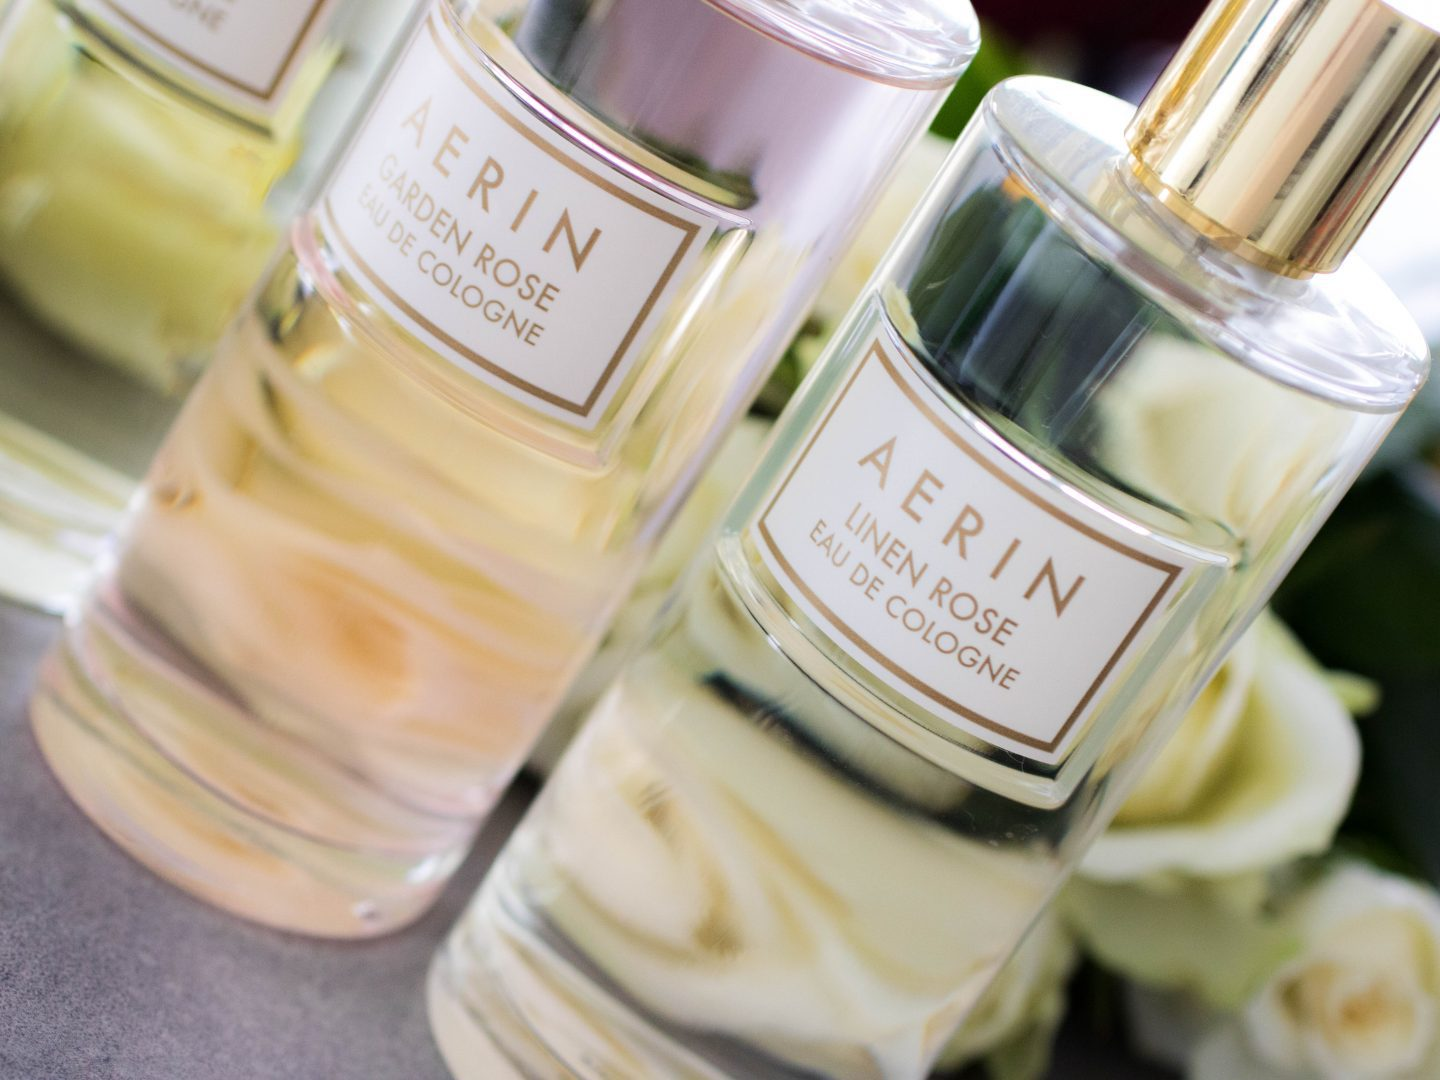 AERIN Rose Cologne Collection